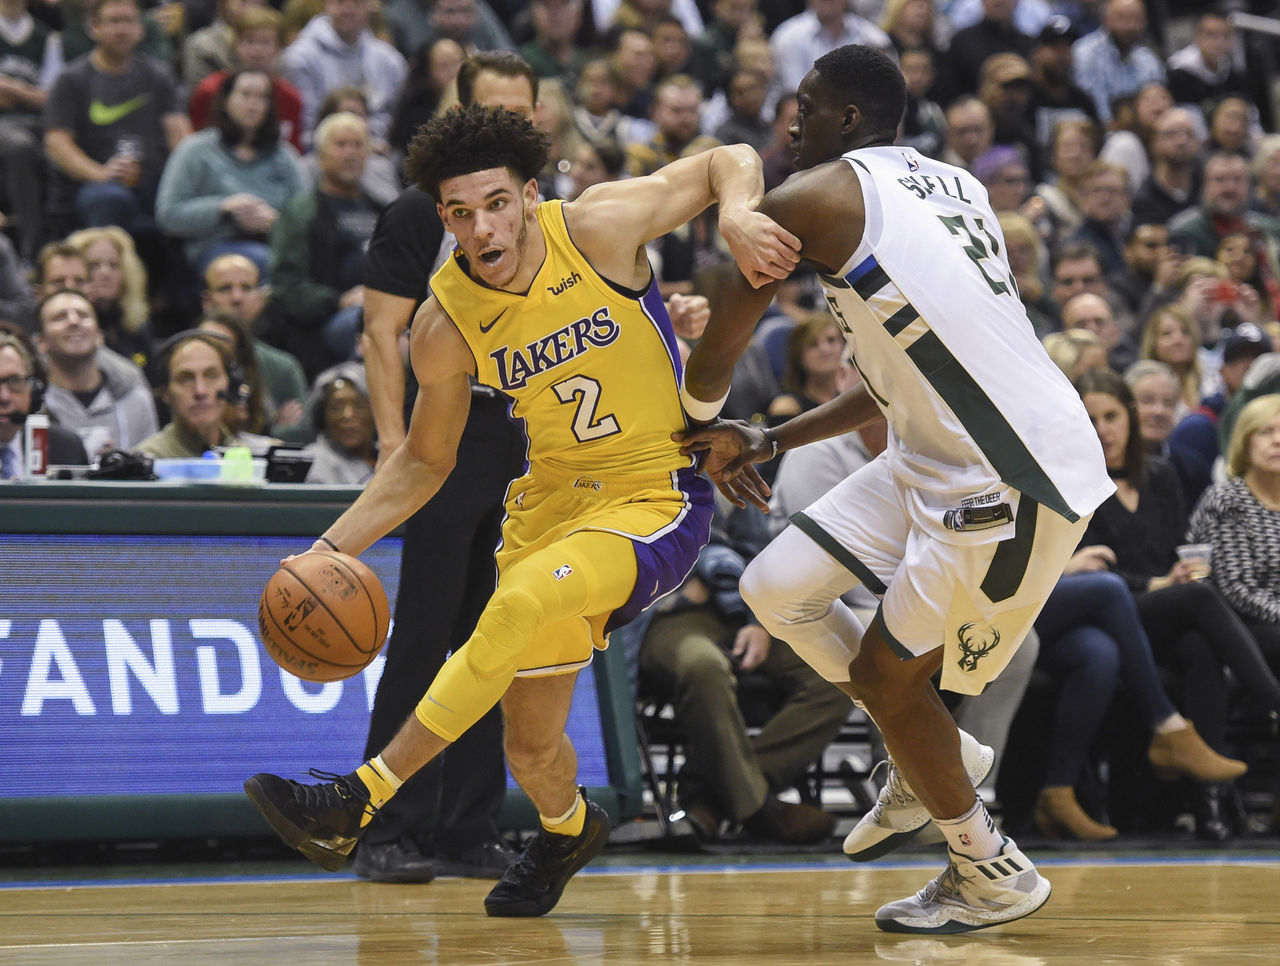 Cropped 2017 11 12t020459z 1742816597 nocid rtrmadp 3 nba los angeles lakers at milwaukee bucks